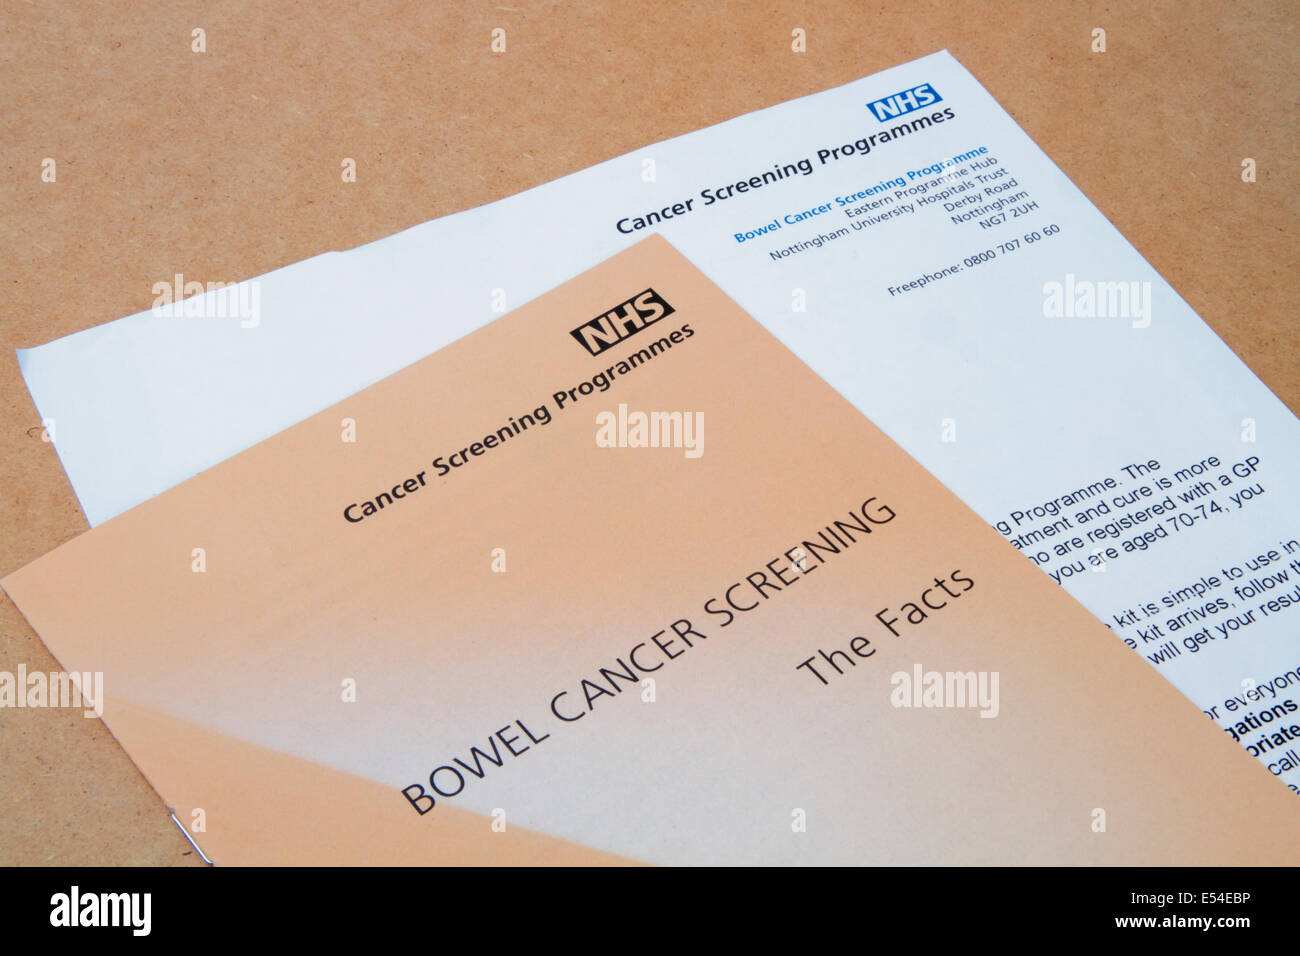 Uk Nhs Bowel Cancer Screening Programme Notification Letter Plus Stock Photo Alamy